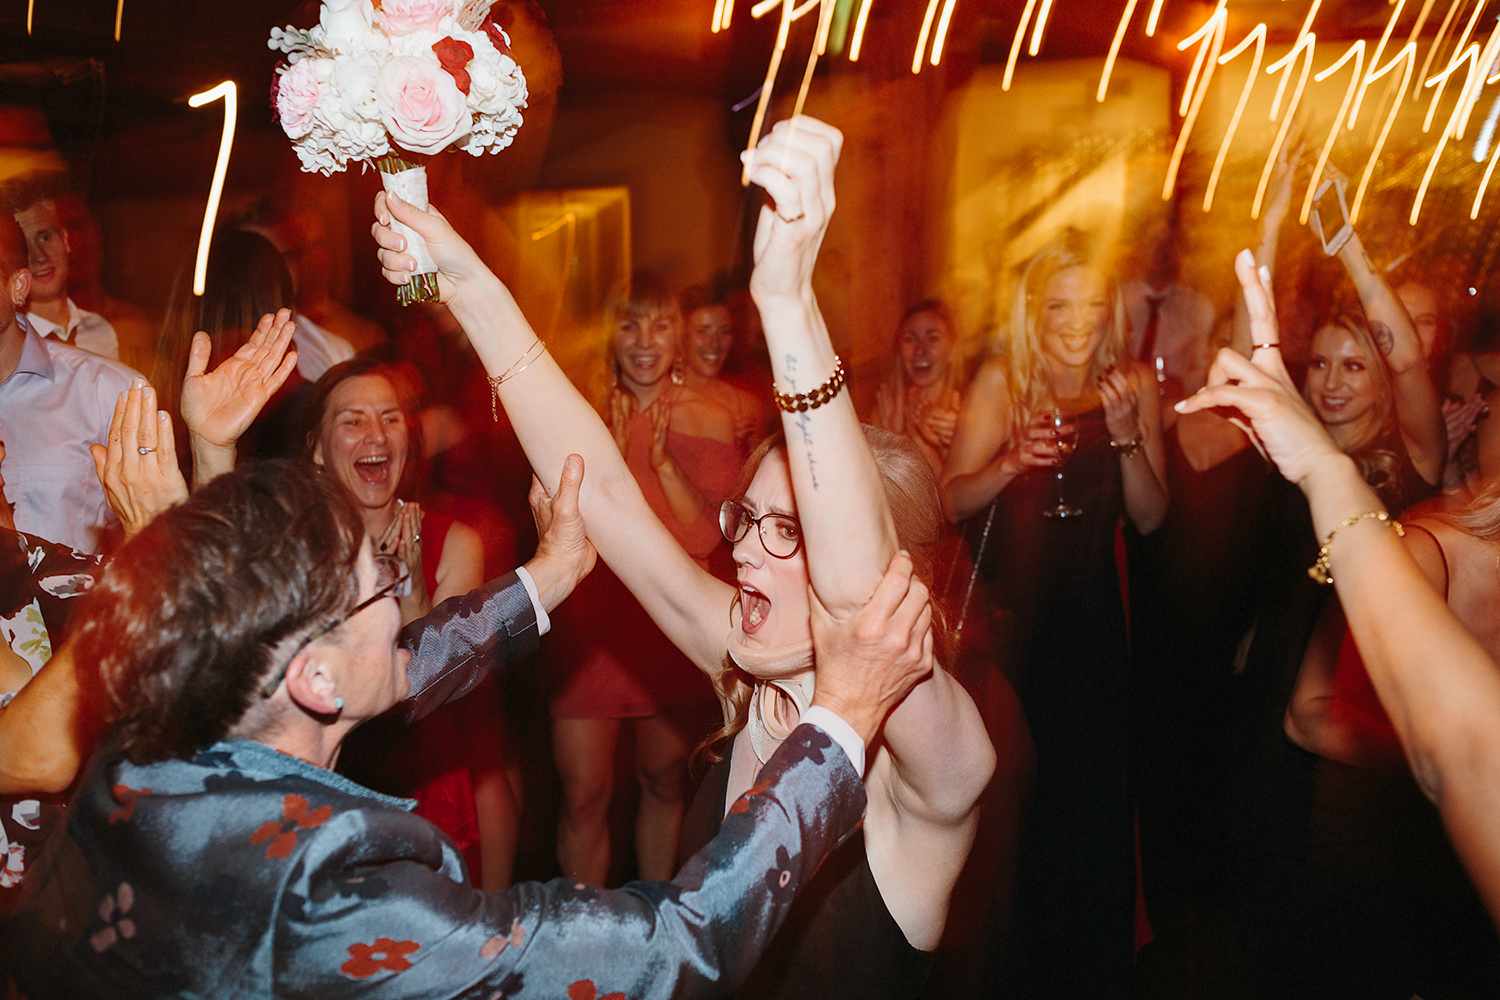 bride-bouquet-toss-candid-moments-toronto's-best-analog-documentary-wedding-photographers-candid-photography-london-ontario-wedding-inspiration.jpg